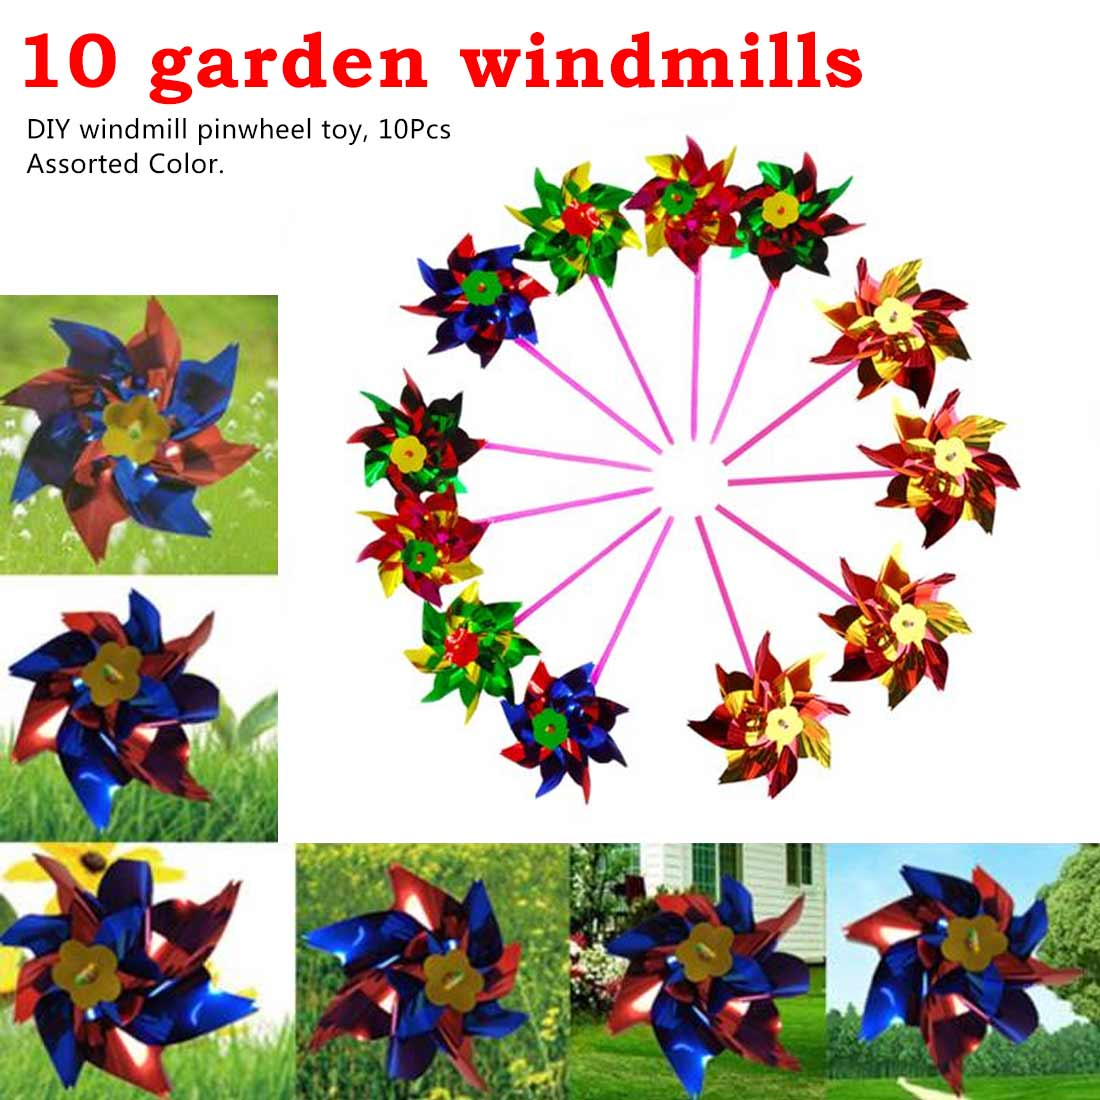 10pc Random Color 15 * 36.5cm Colorful Plastic Sequins Windmill Whirligig Wind Spinner Home Yard Garden Decor DIY Pinwheel Toy